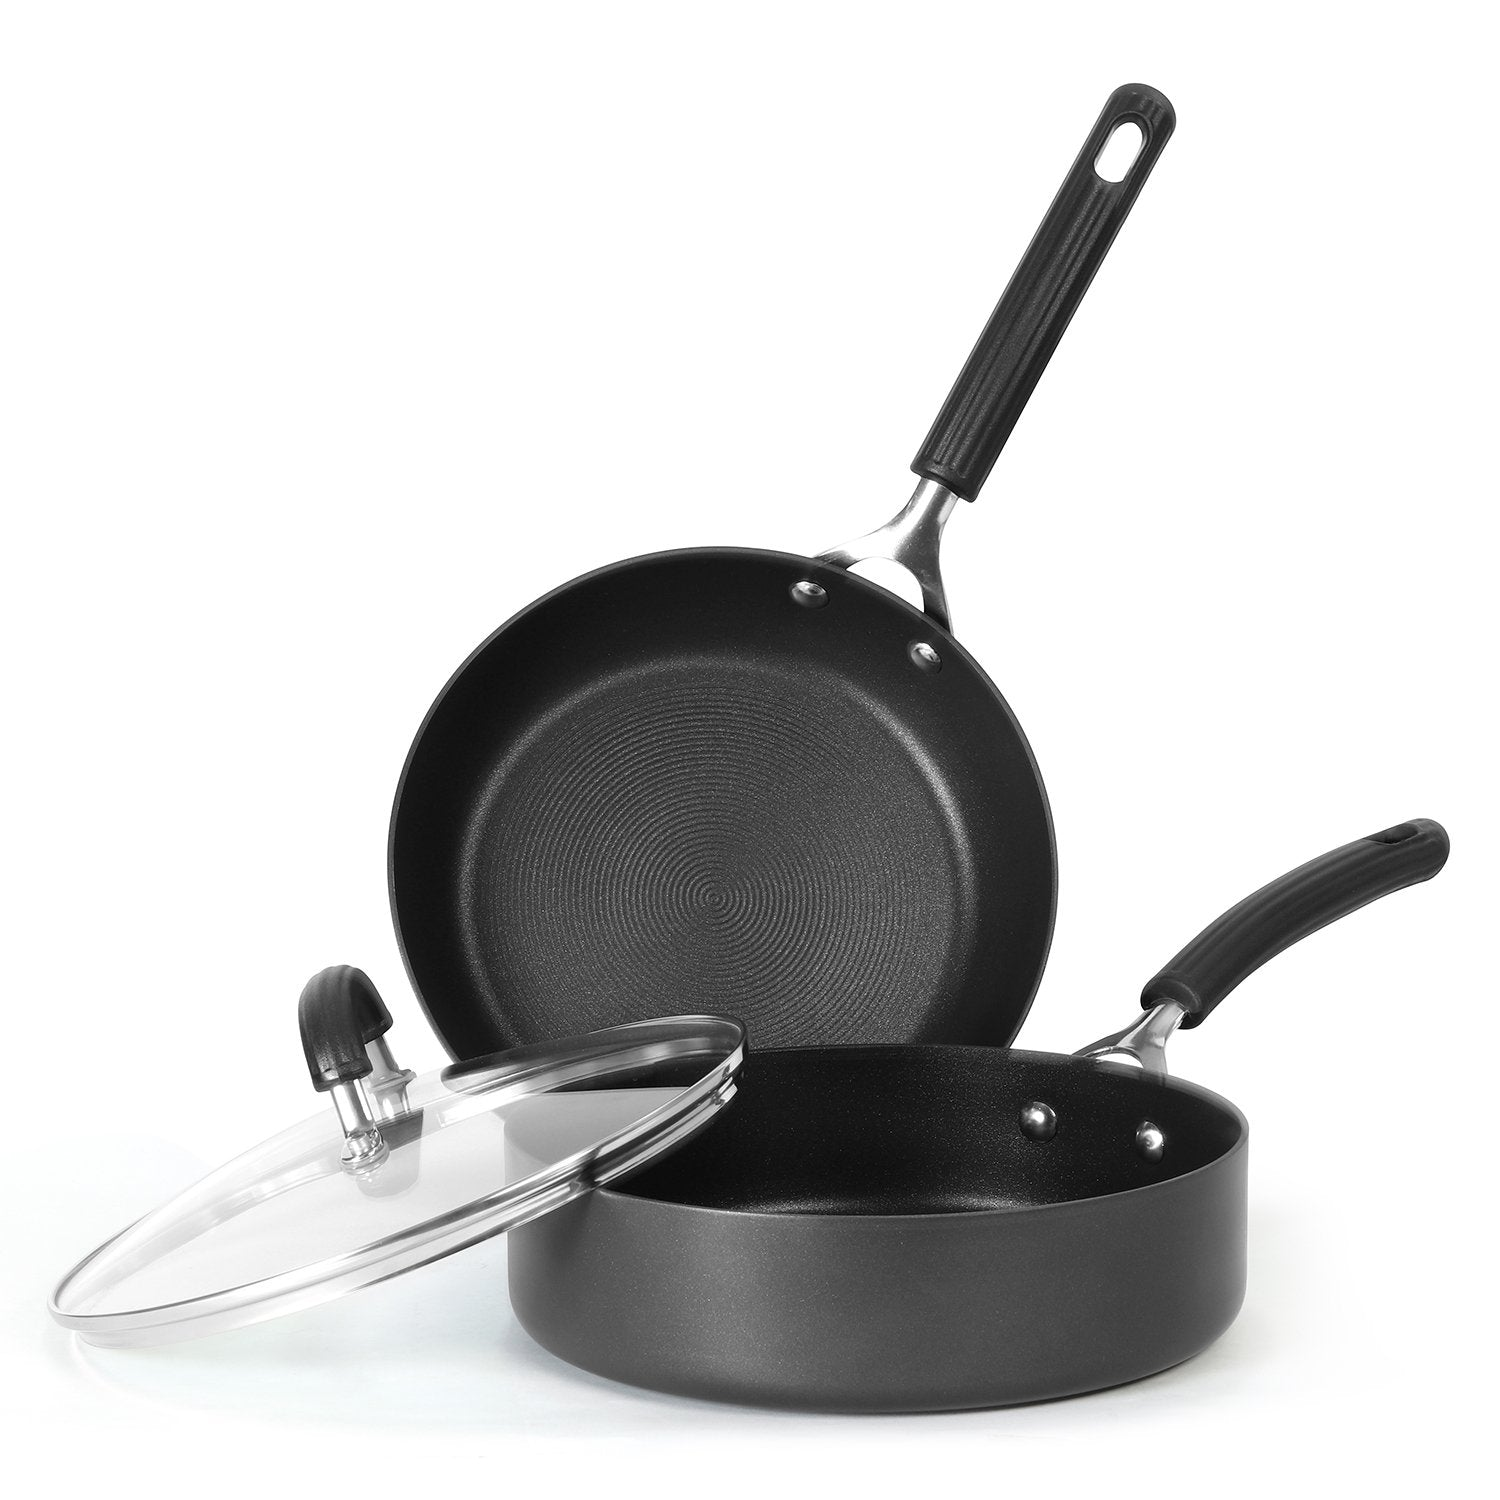 Circulon Origins Non-Stick + Hard Anodized 3-Piece(Saute + Stirfry) Cookware Set (Gas and Induction Compatible) - Pots and Pans